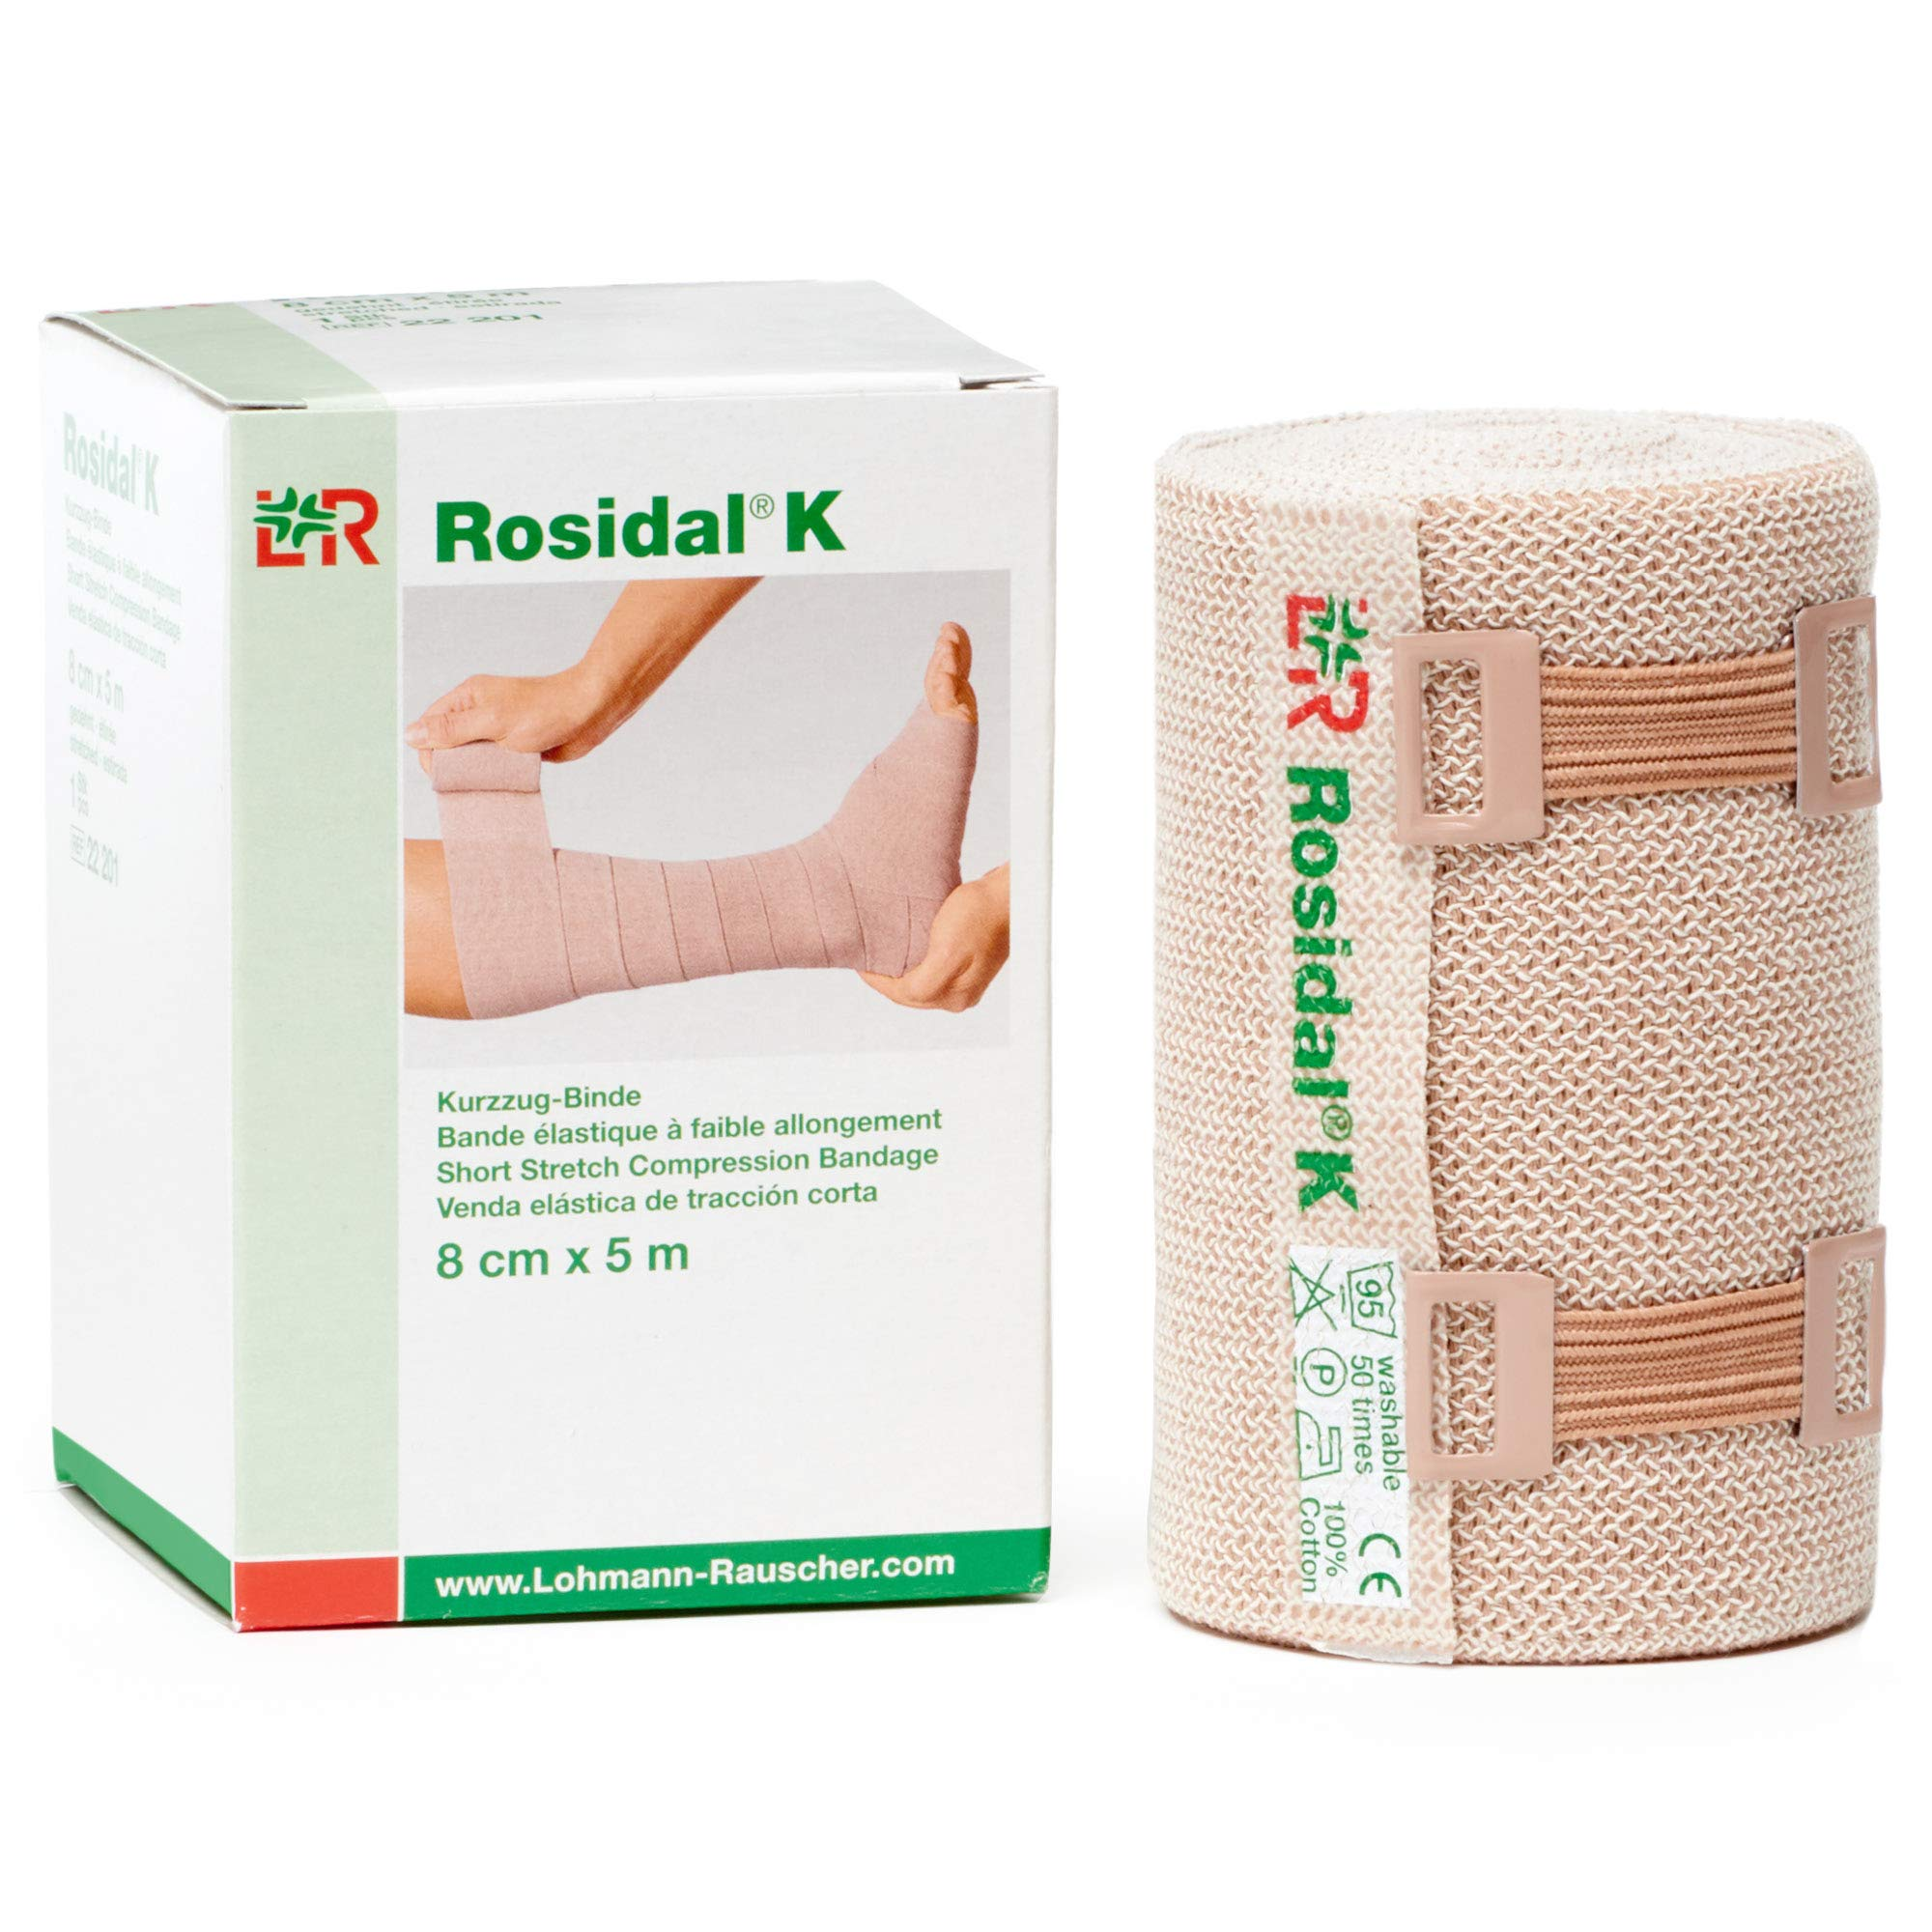 Rosidal K 8cm x 5m Short Stretch Bandage 4 Each by Lohamnn Rauscher